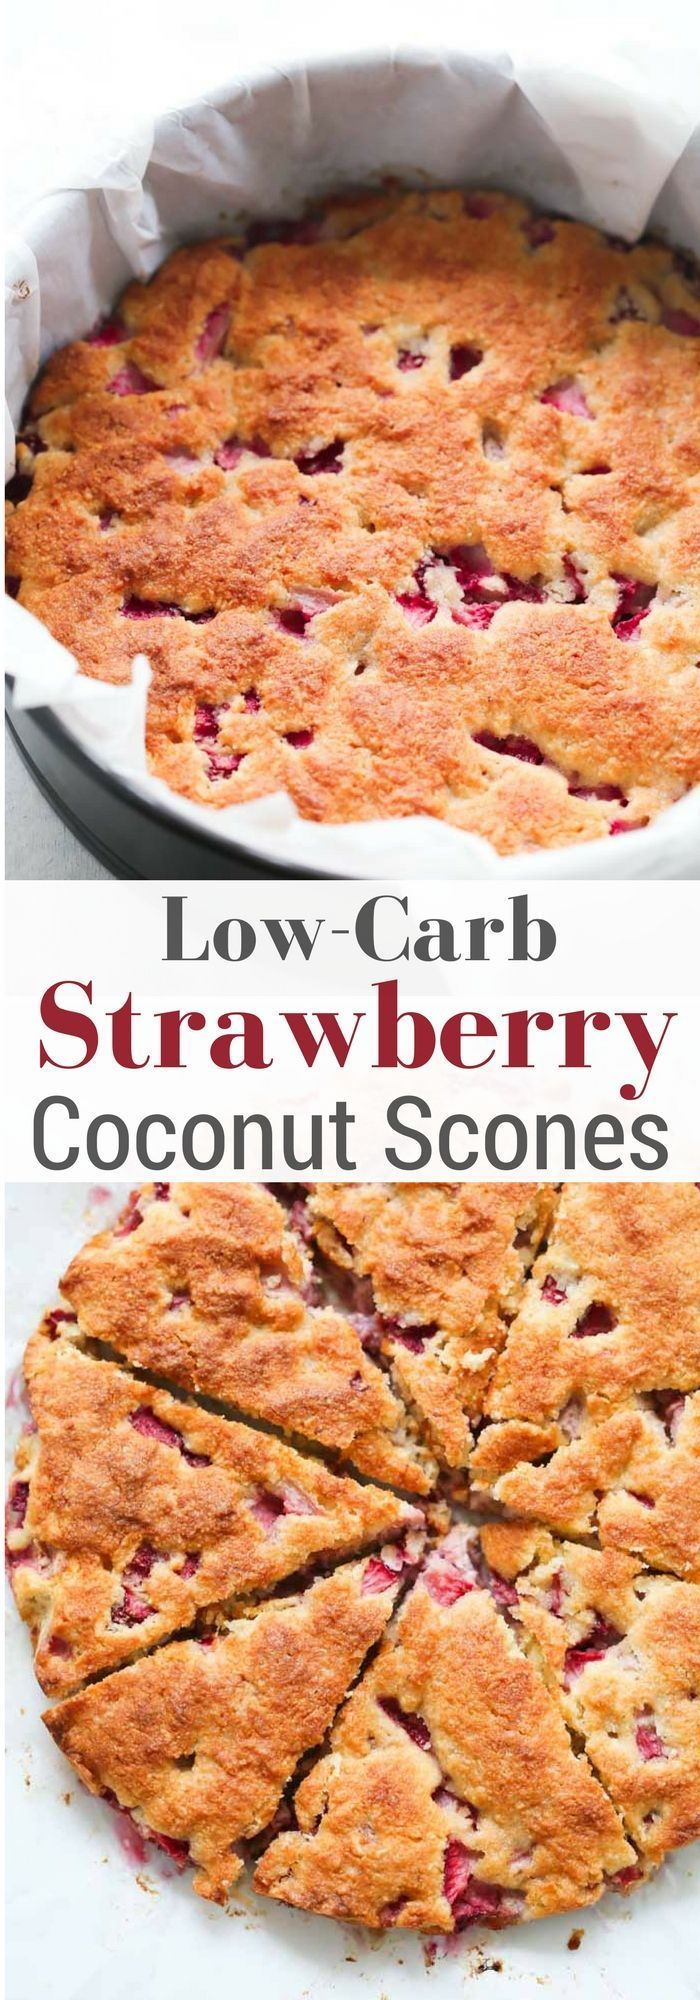 These Low-carb Strawberry Coconut Scones are gluten-free and made with almond flour, shredded coconut and fresh juicy strawberries.